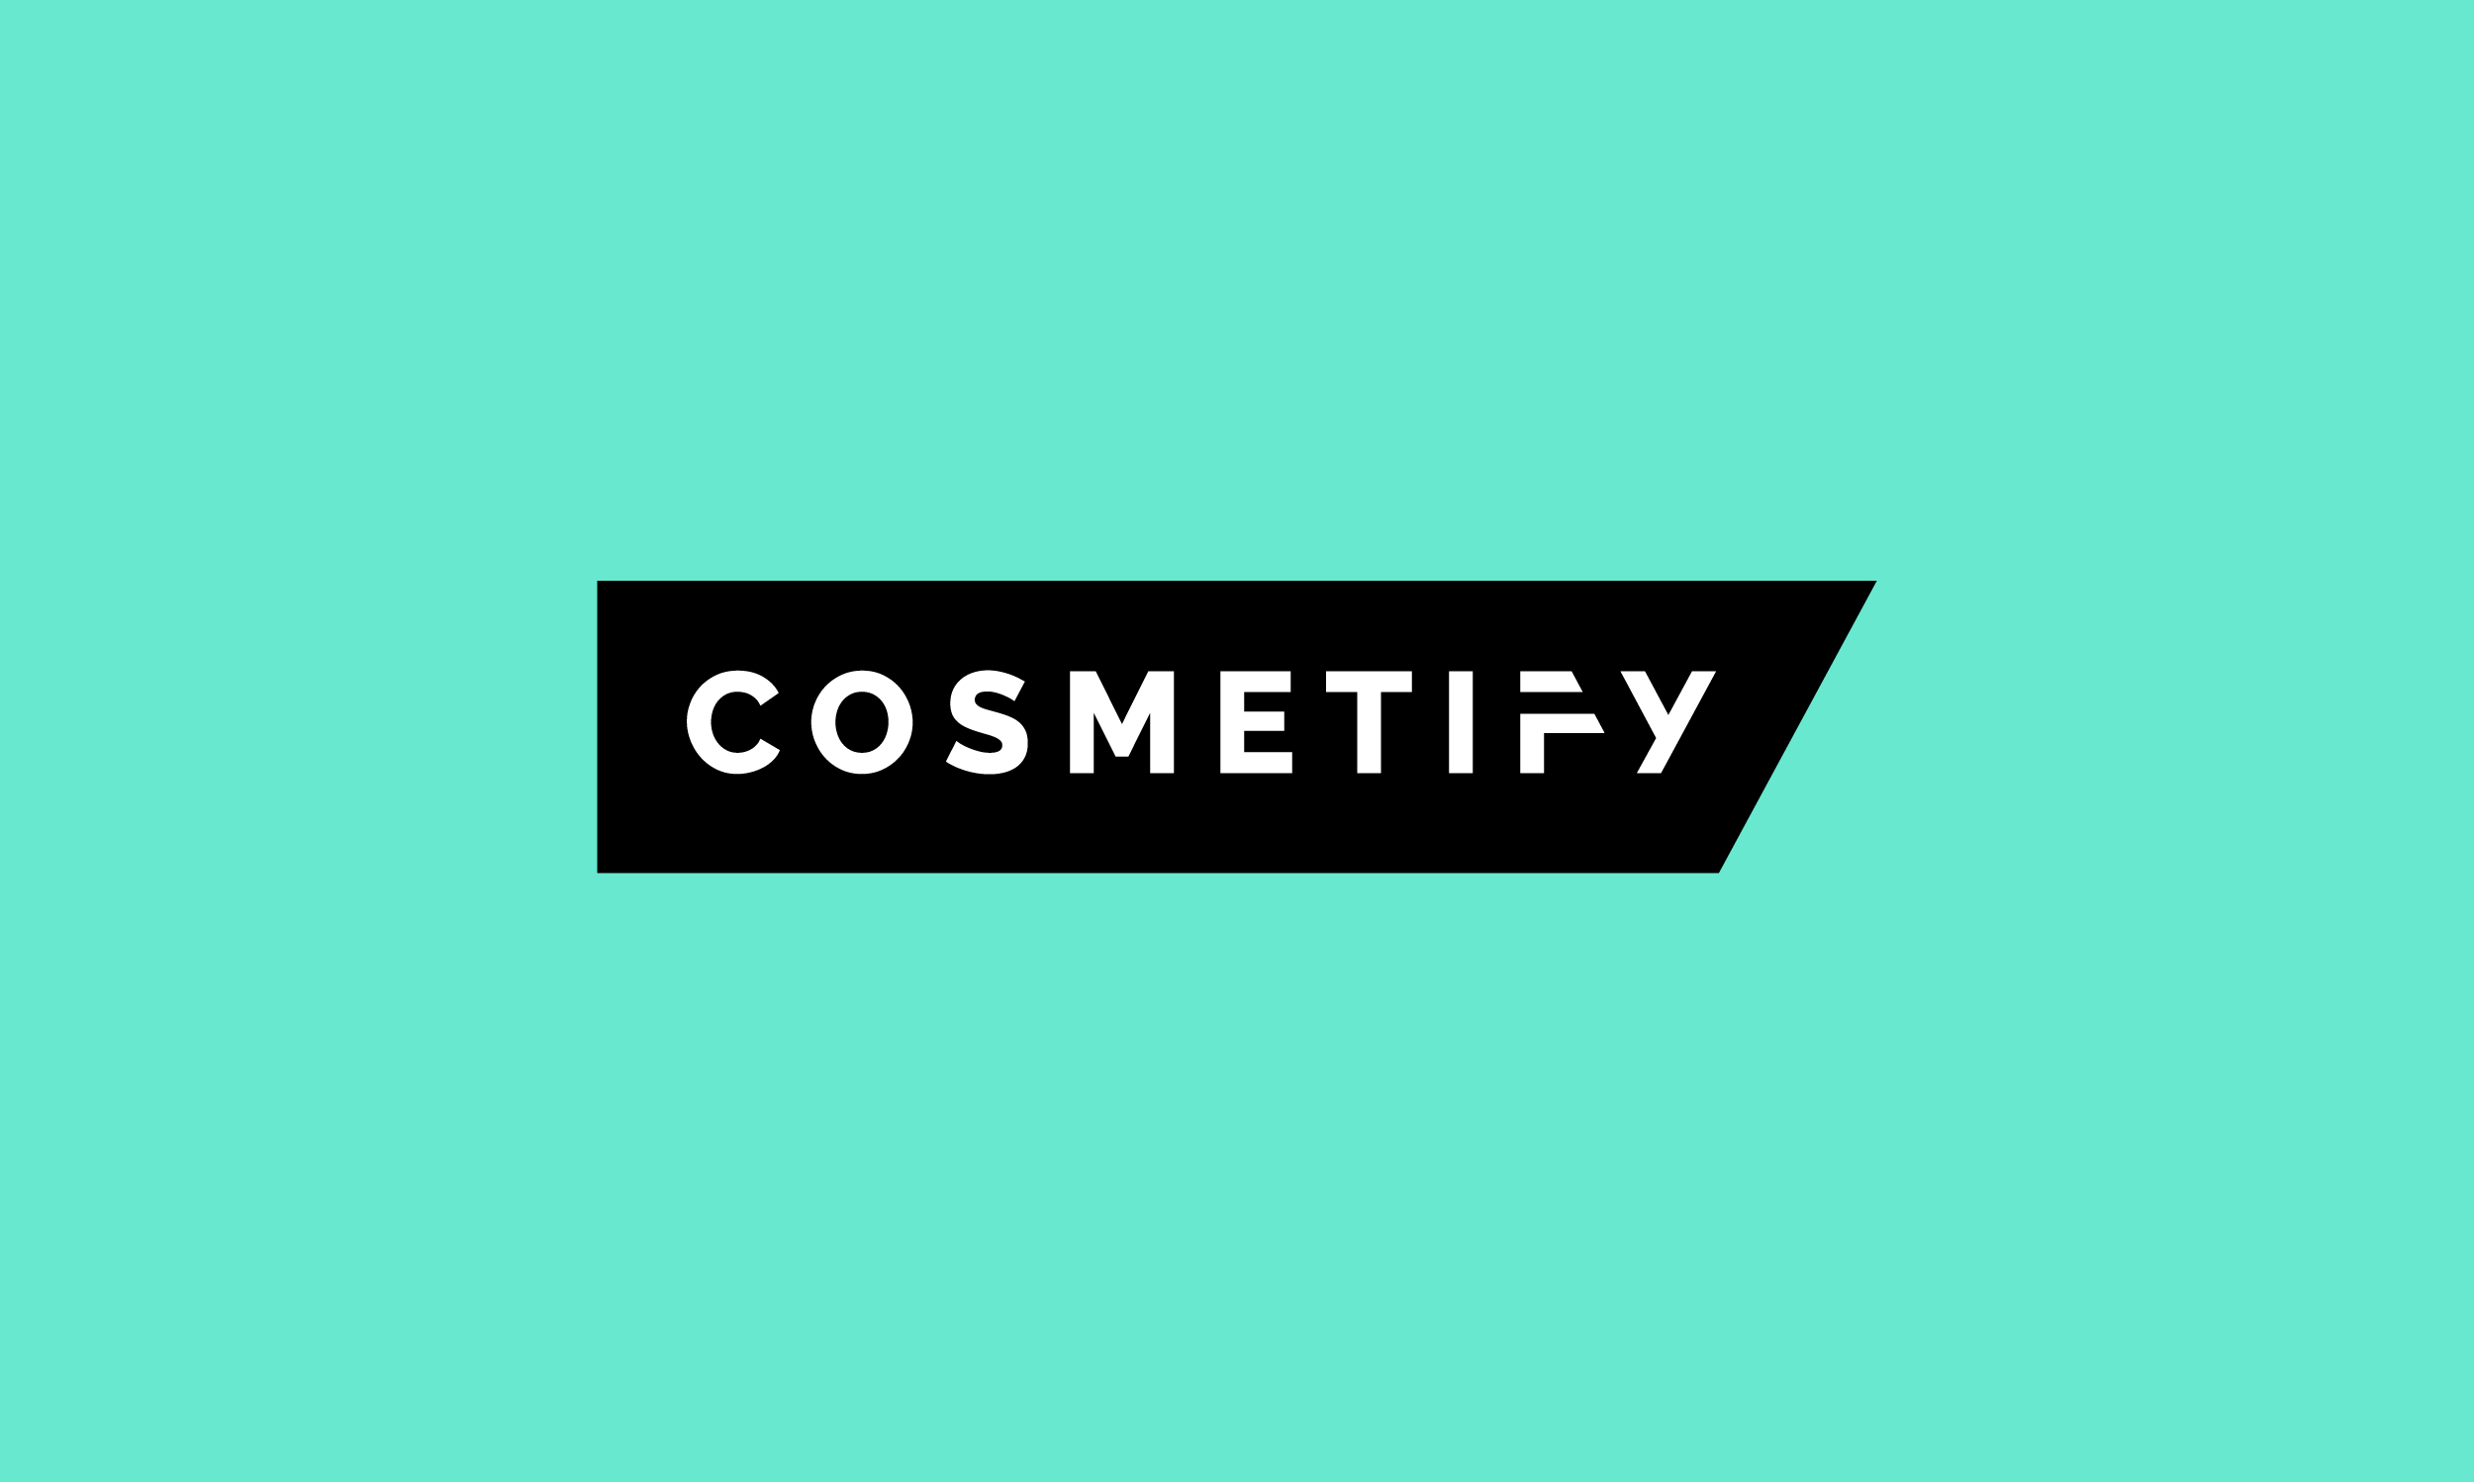 Logo Design and Brand Identity Kent - Cosmetify